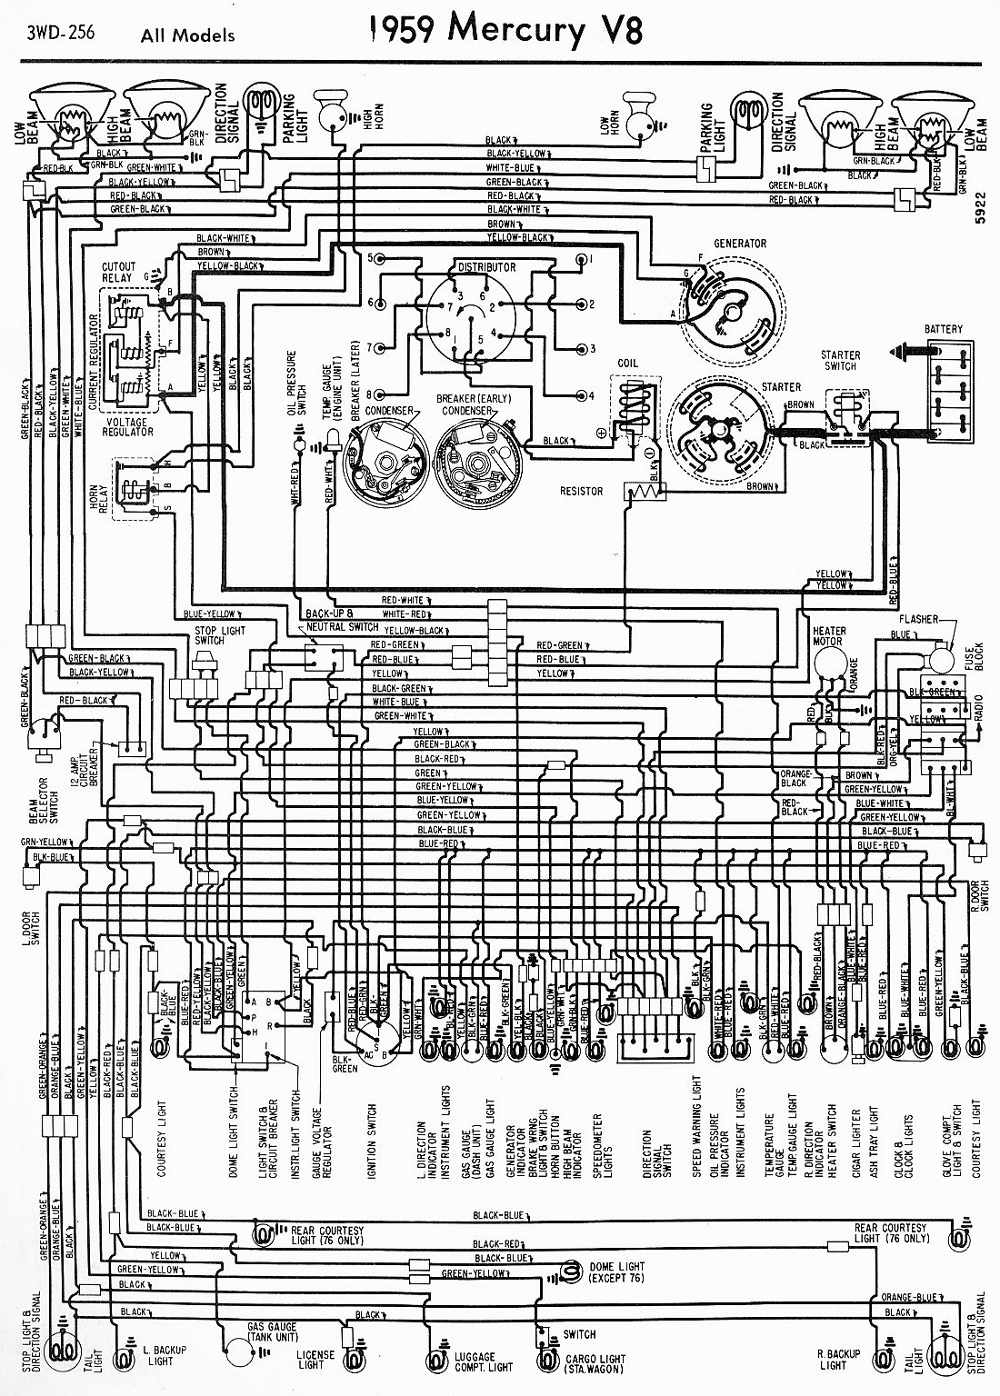 1959 Mercury V8 All Models Wiring Diagram